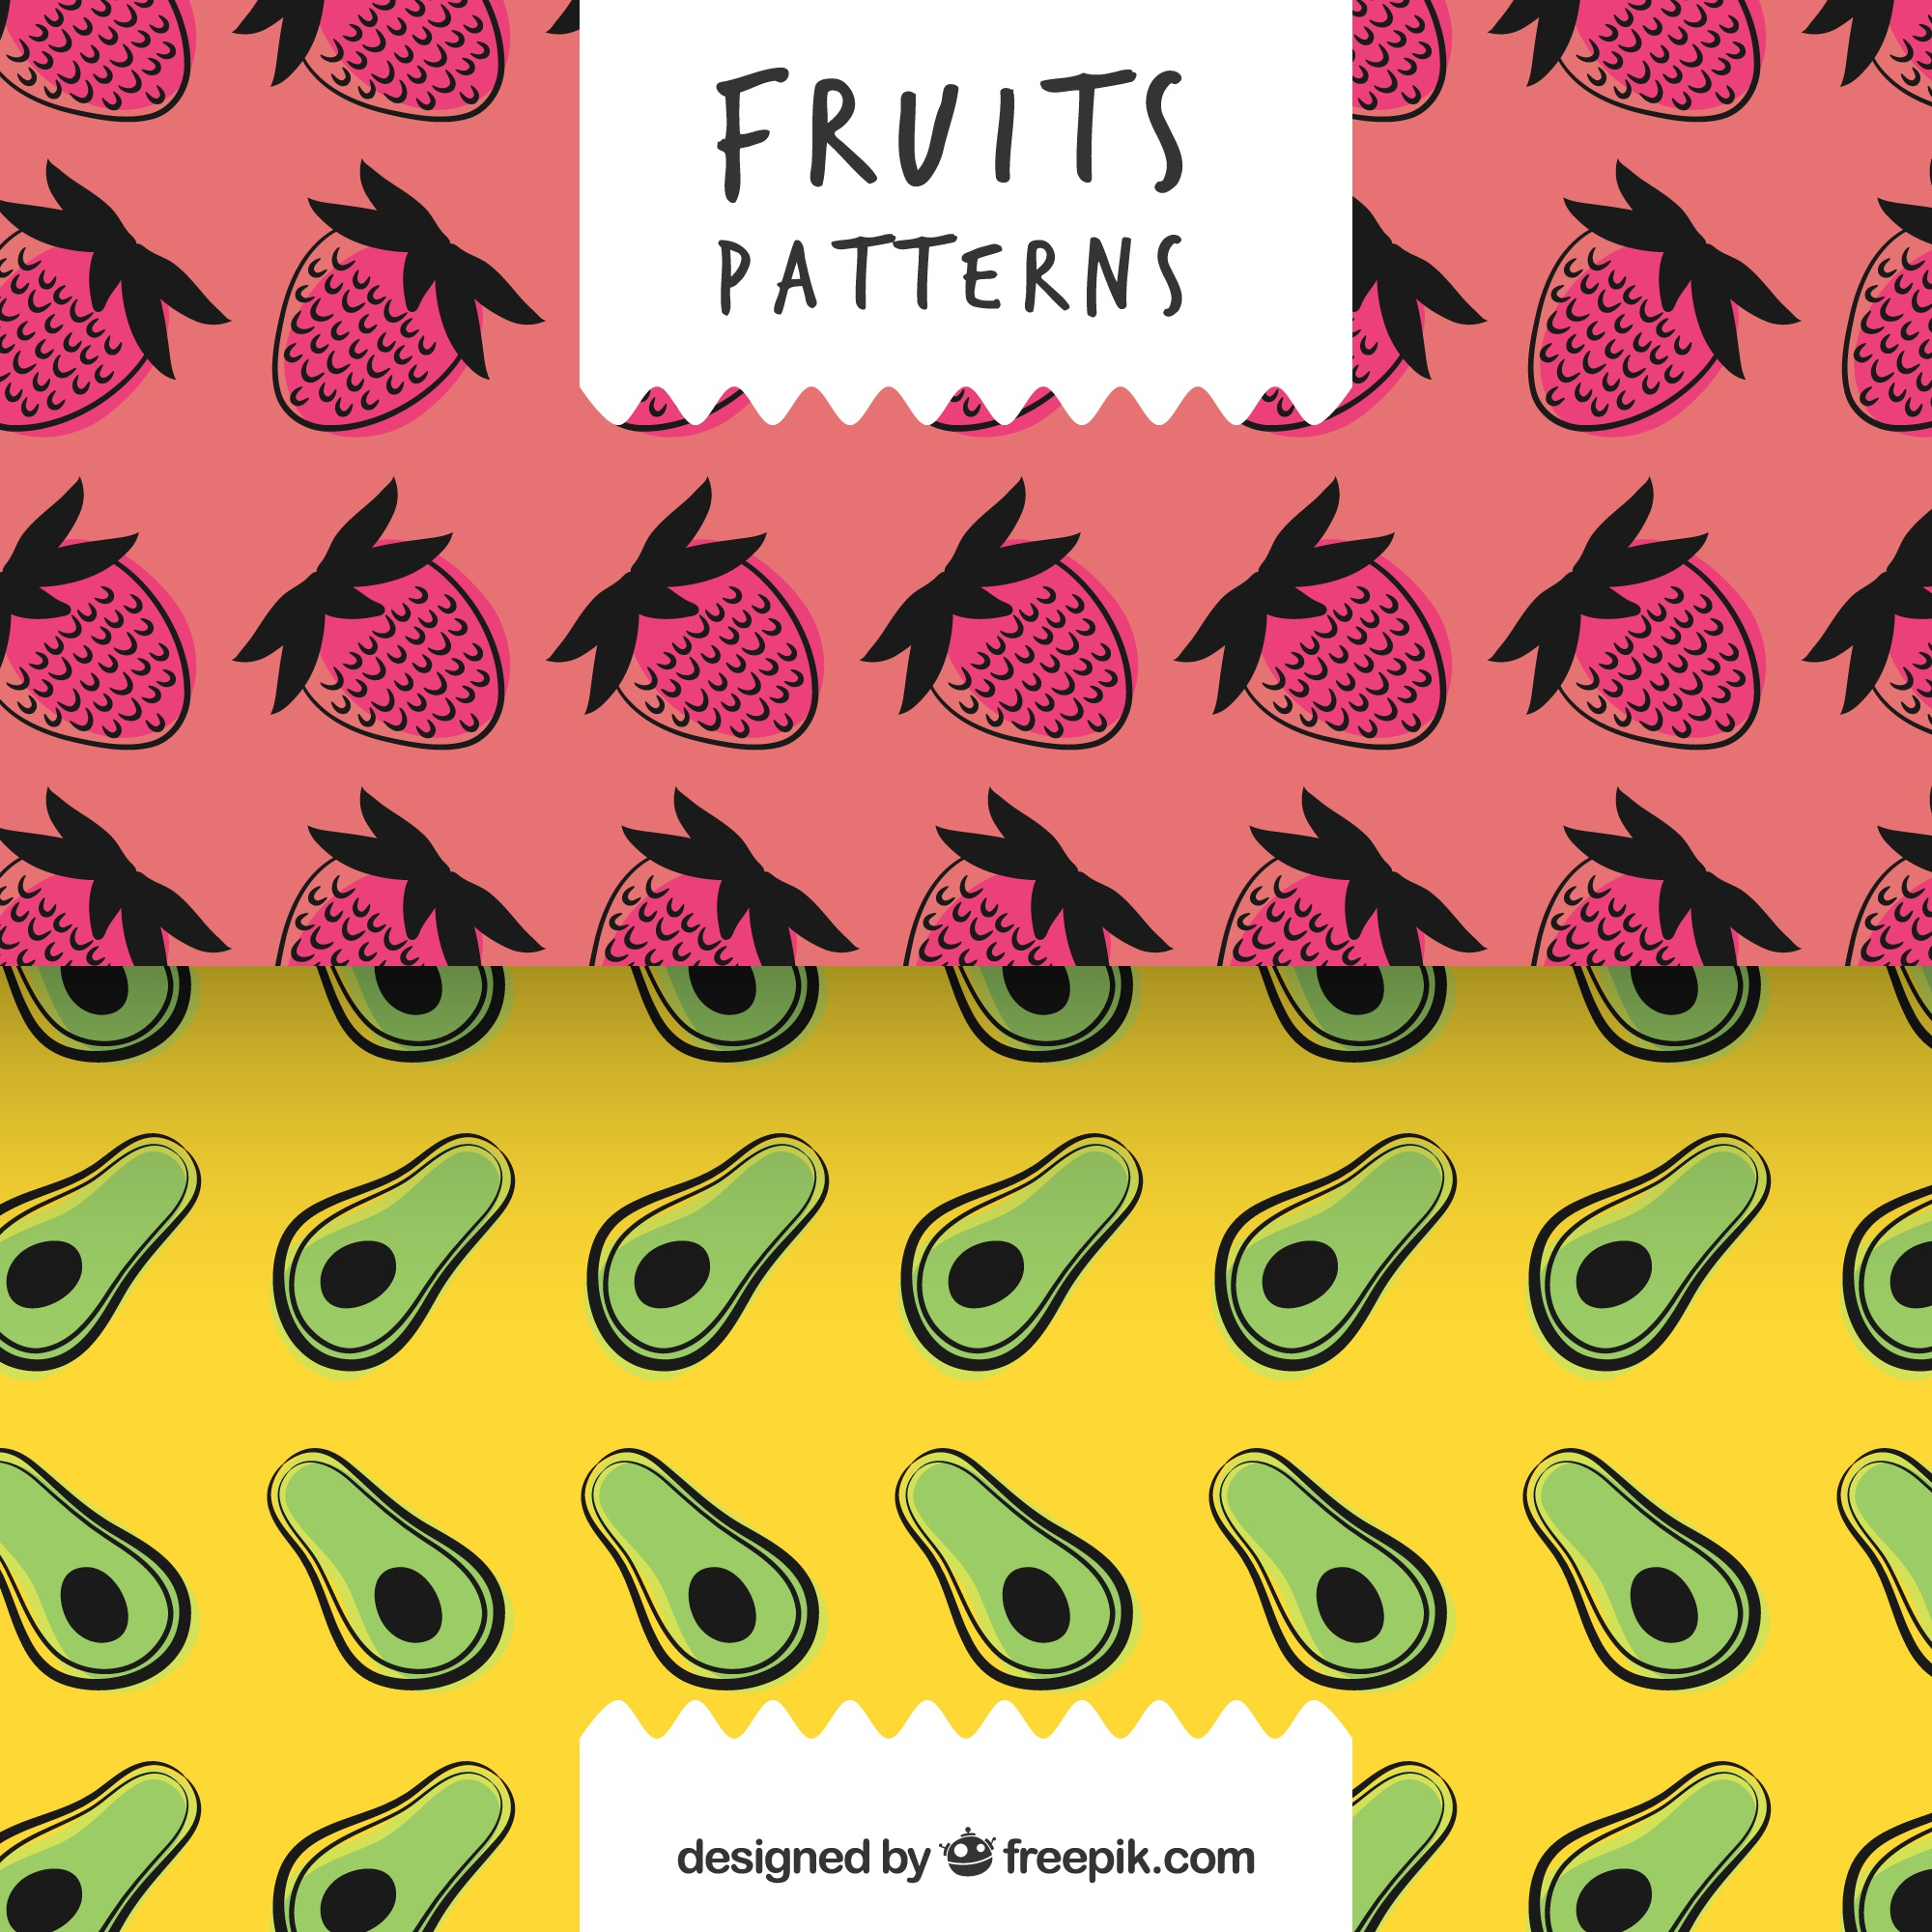 Hand drawn patterns of strawberries and avocados